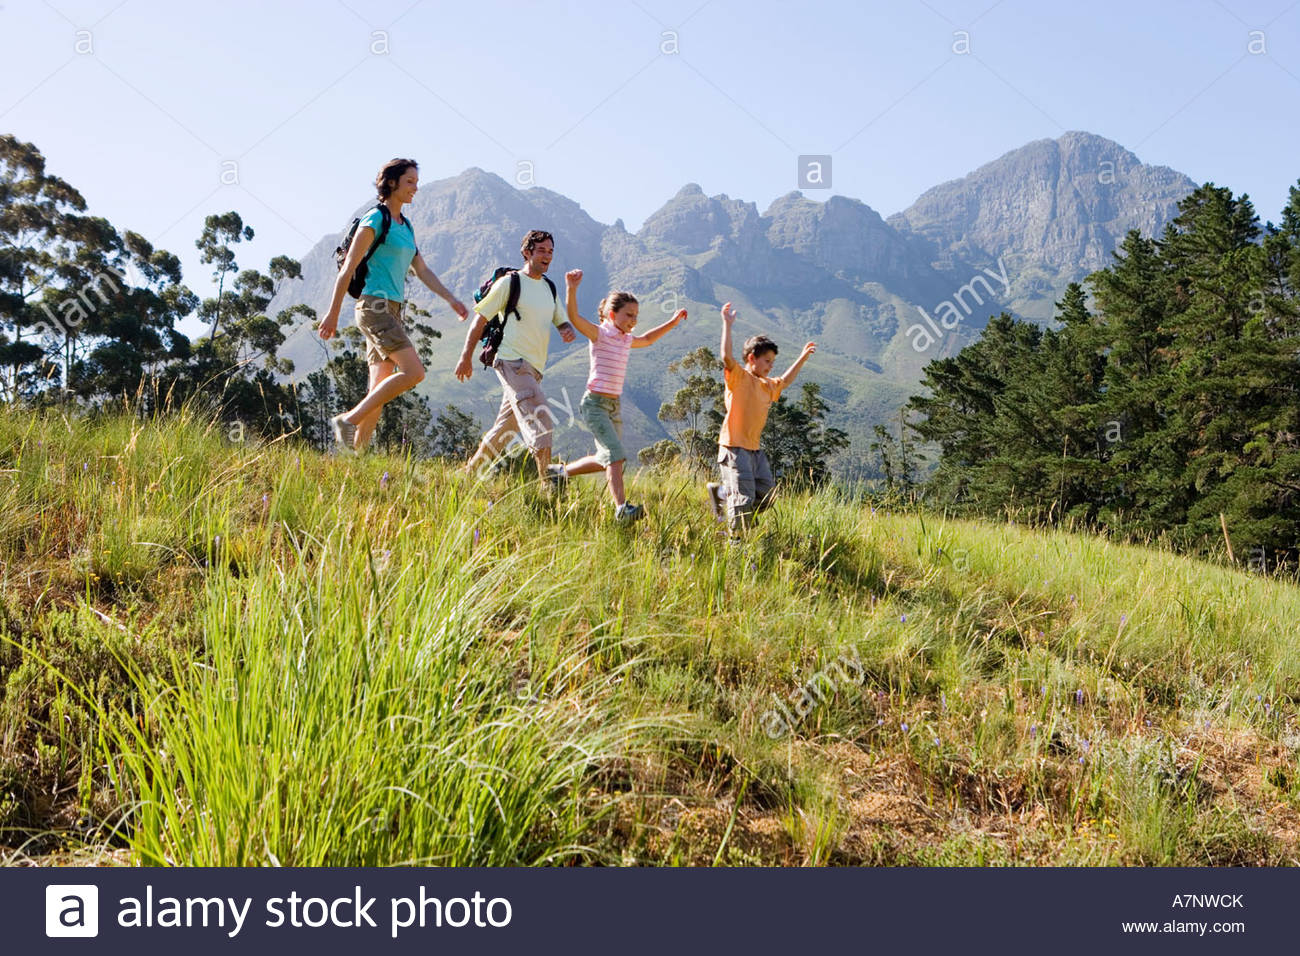 Family hiking on mountain trail walking in line boy 8 10 leading side view - Stock Image